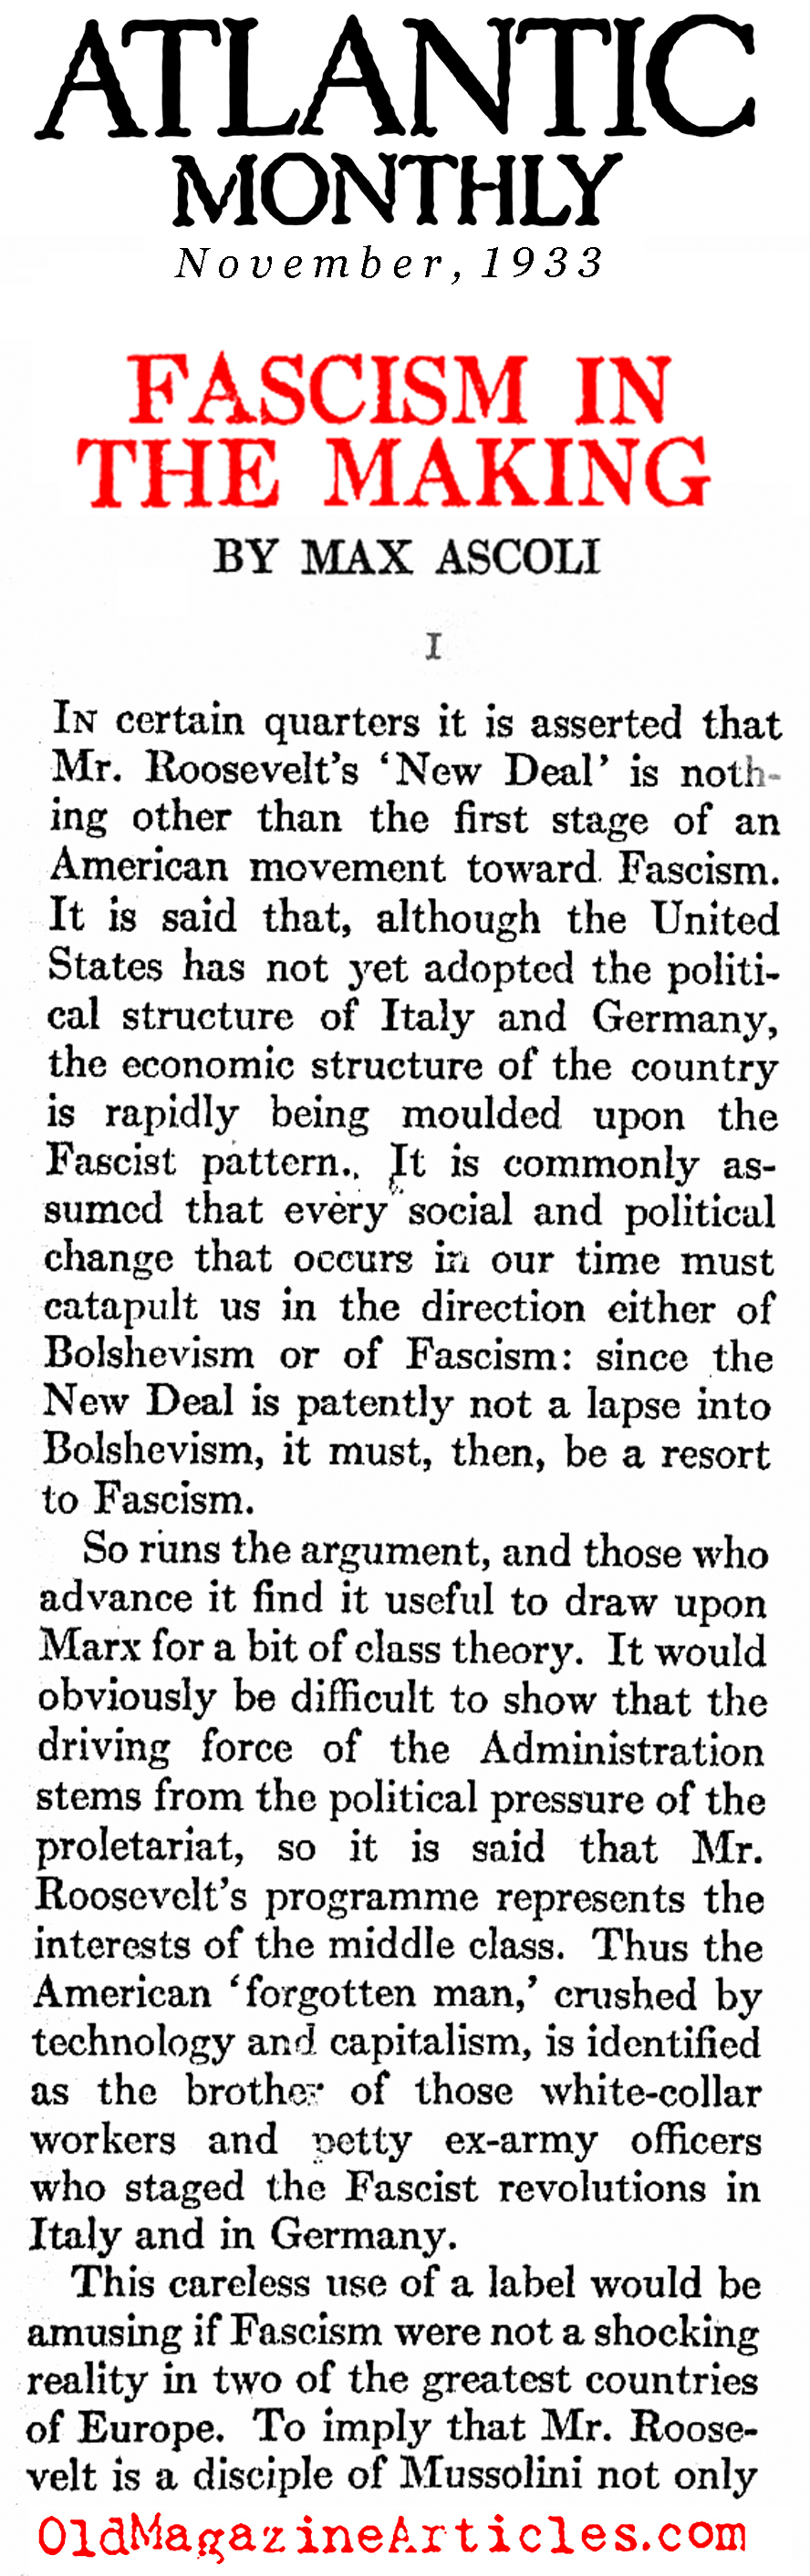 The New Deal Was Not Fascist  (The Atlantic Monthly, 1933)